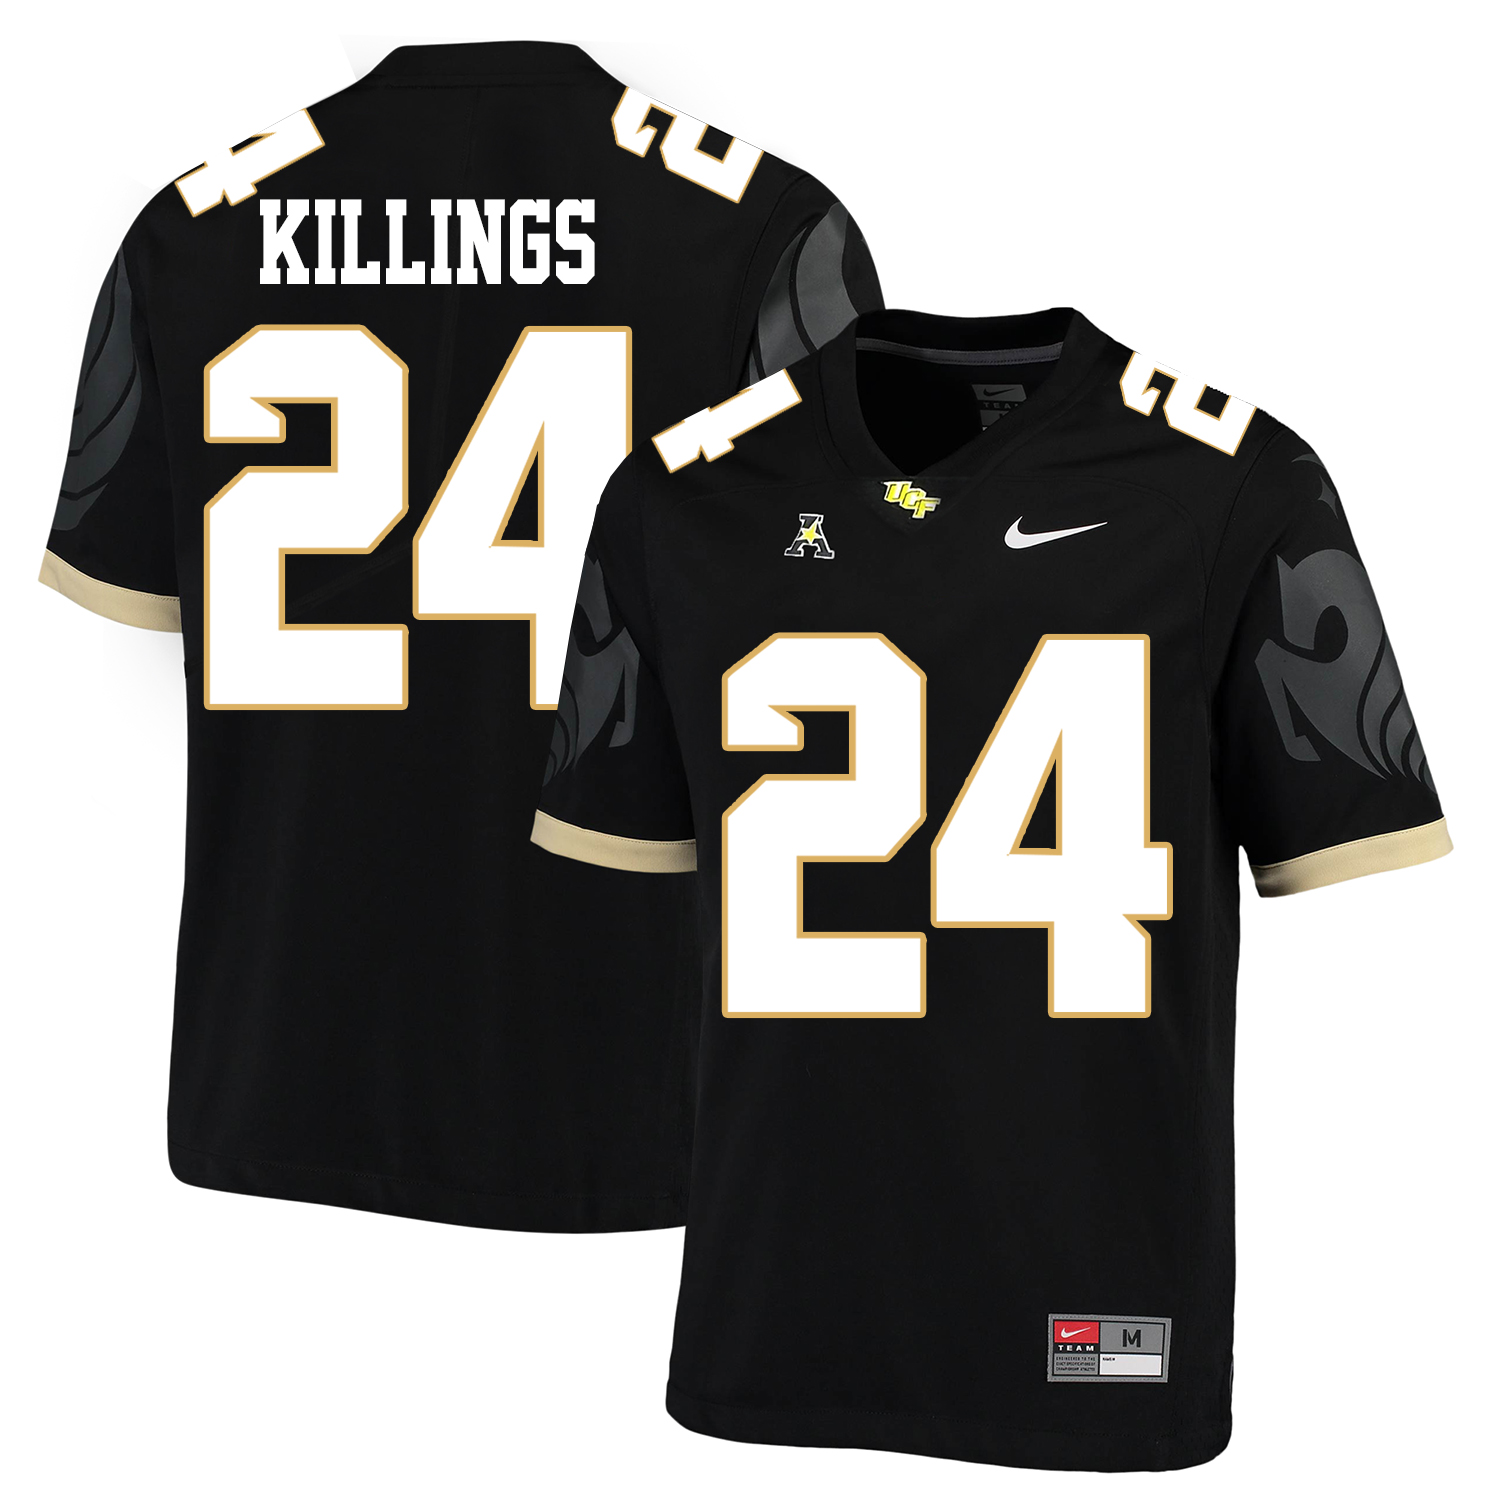 UCF Knights 24 D.J. Killings Black College Football Jersey